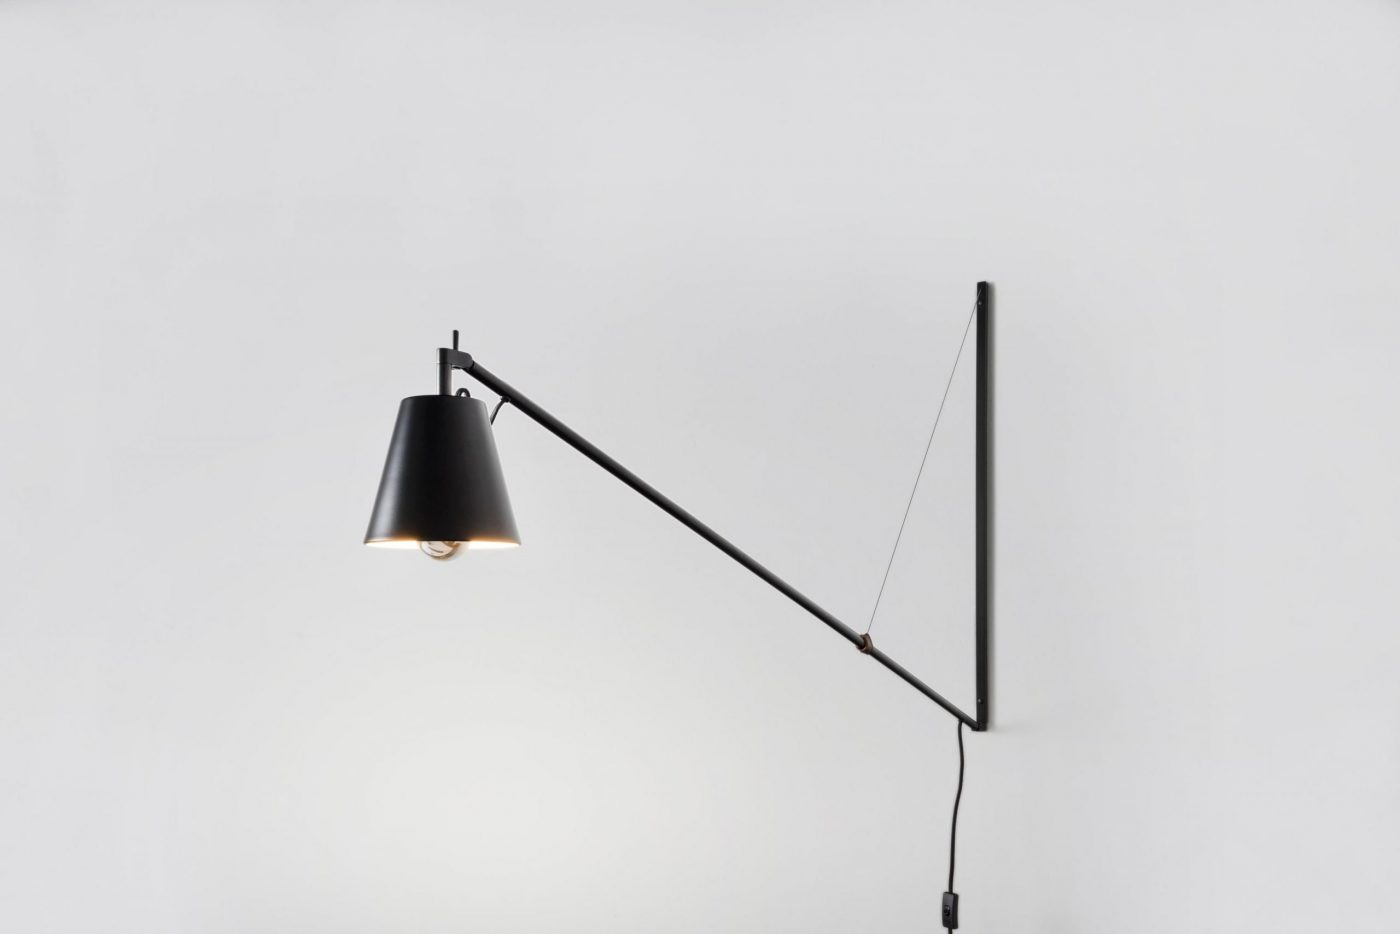 03 MYKILOS LEUCHTE LAMPE WAND STAHL STEEL BLACK SCHWARZ DESIGNER LAMP WALL WORK DESK KITCHEN KÜCHE scaled